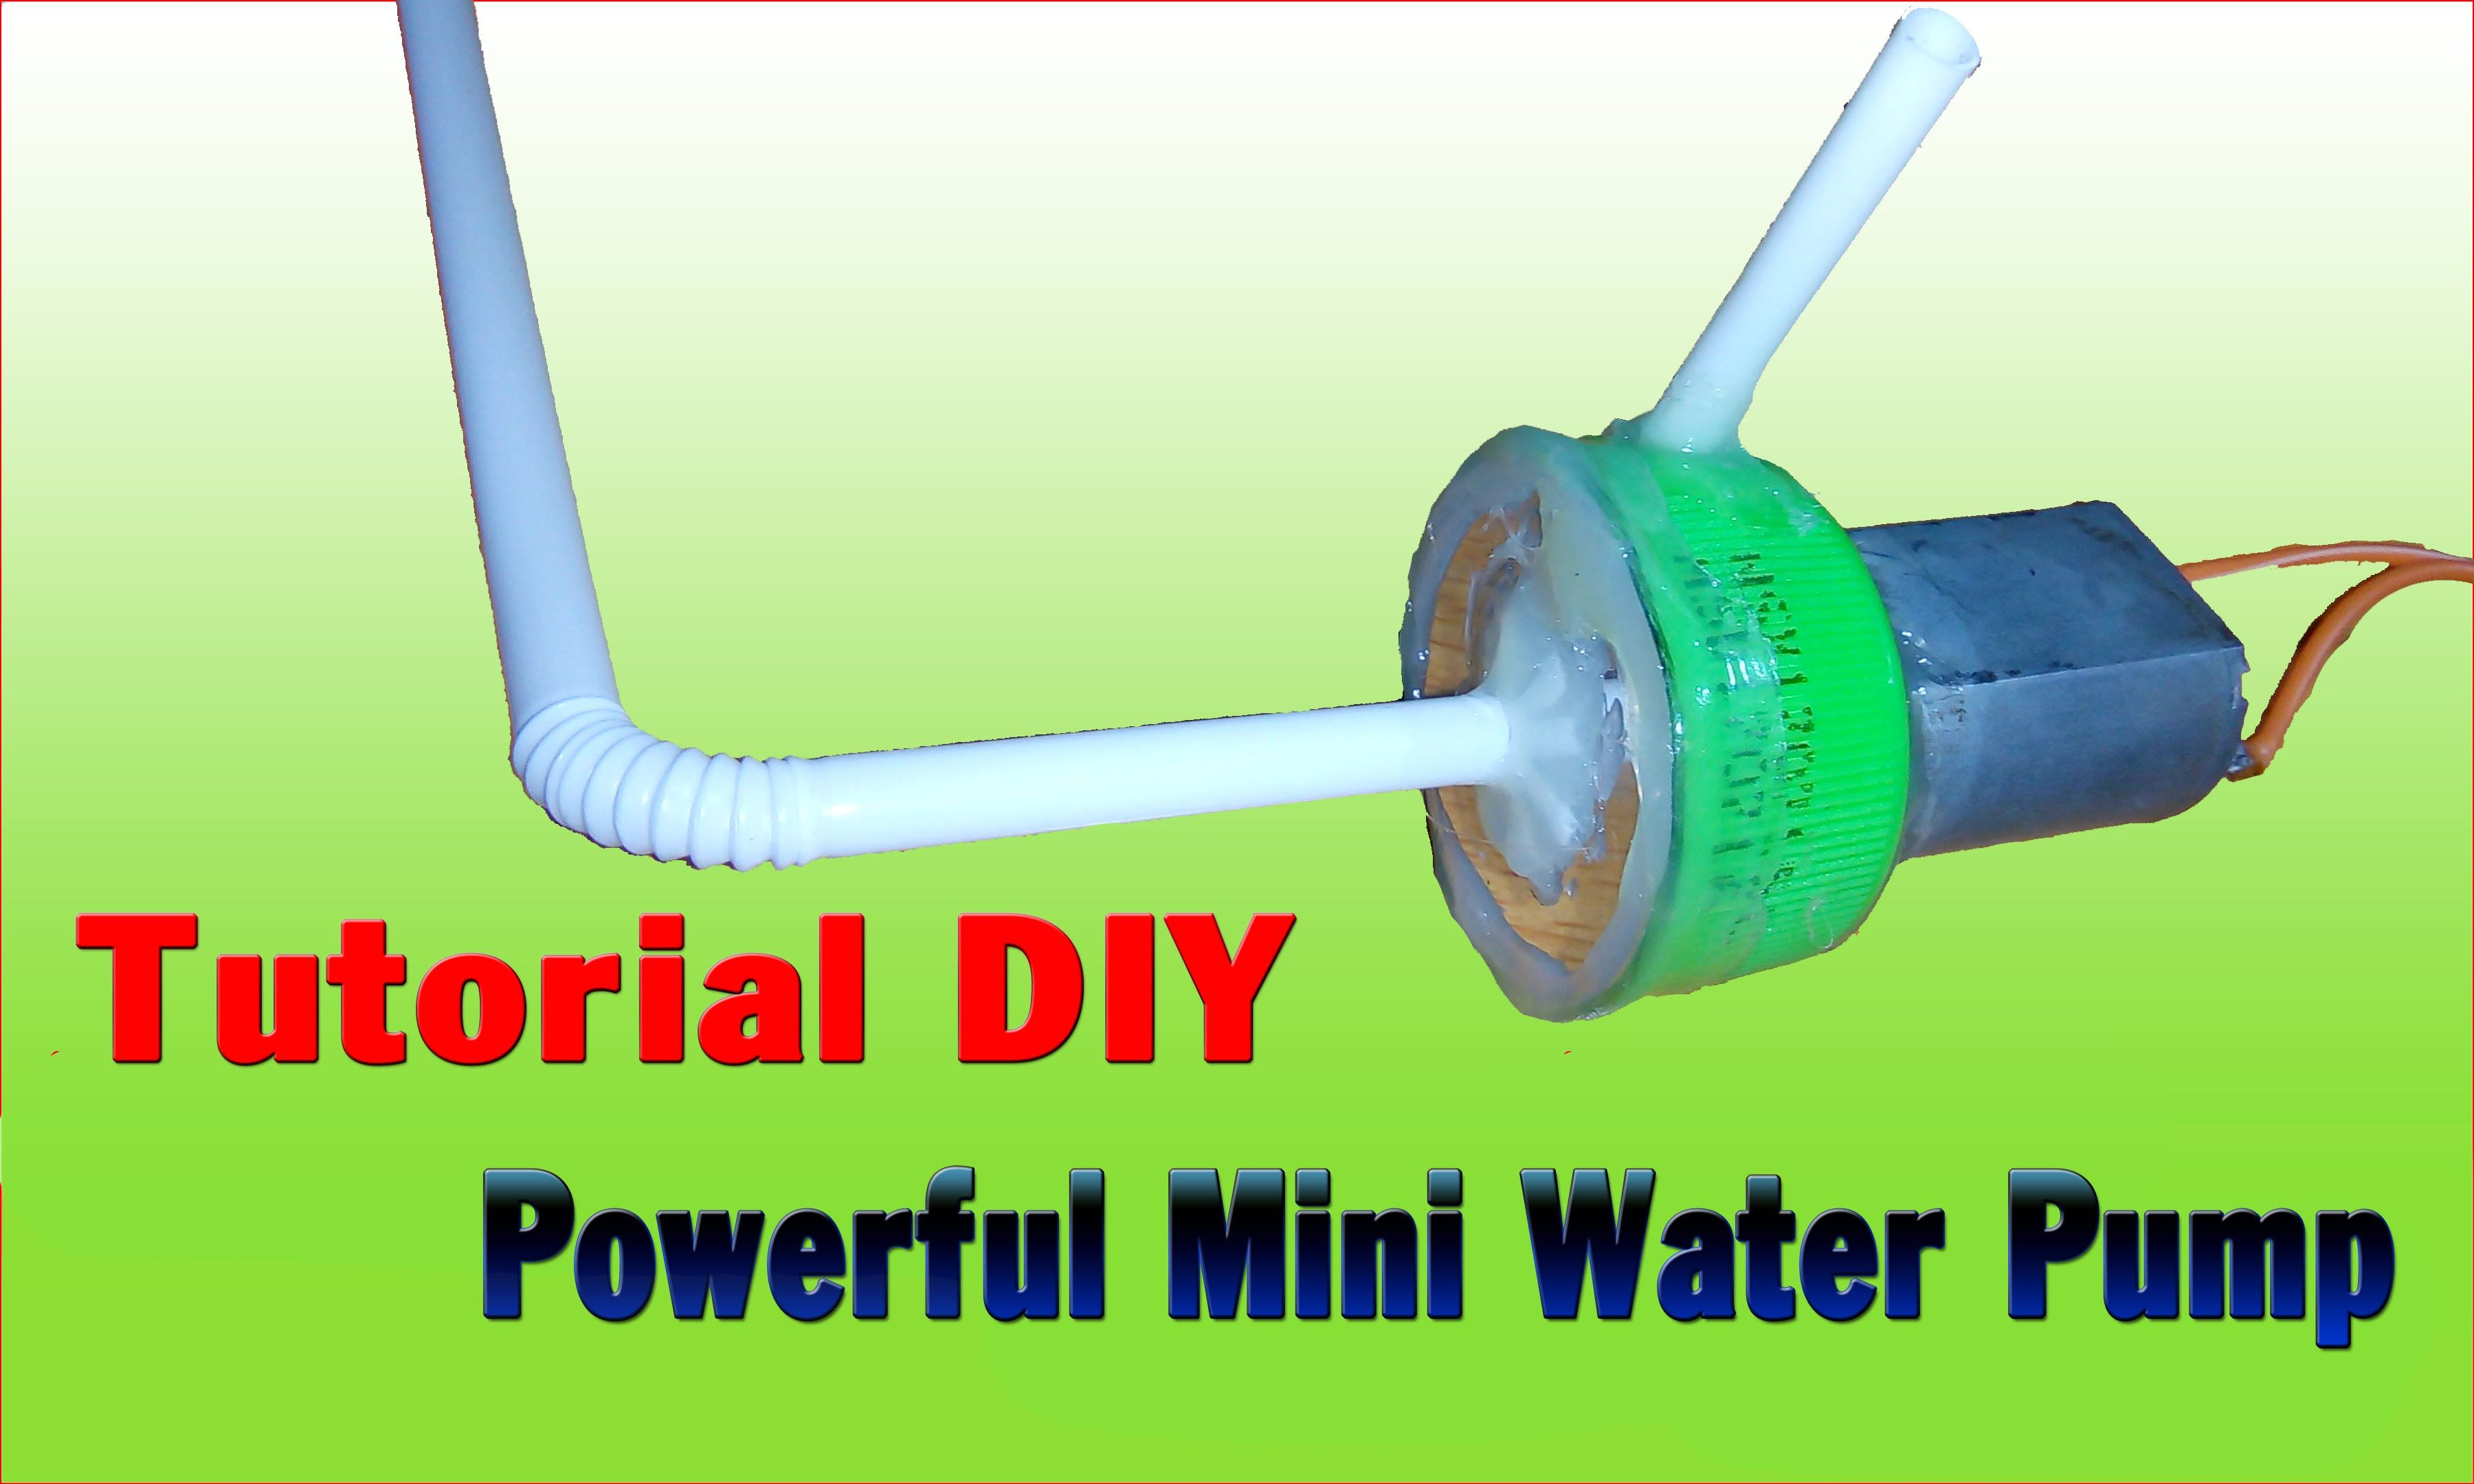 How To Make powerful mini water pump (simple), Make water pumps MINI